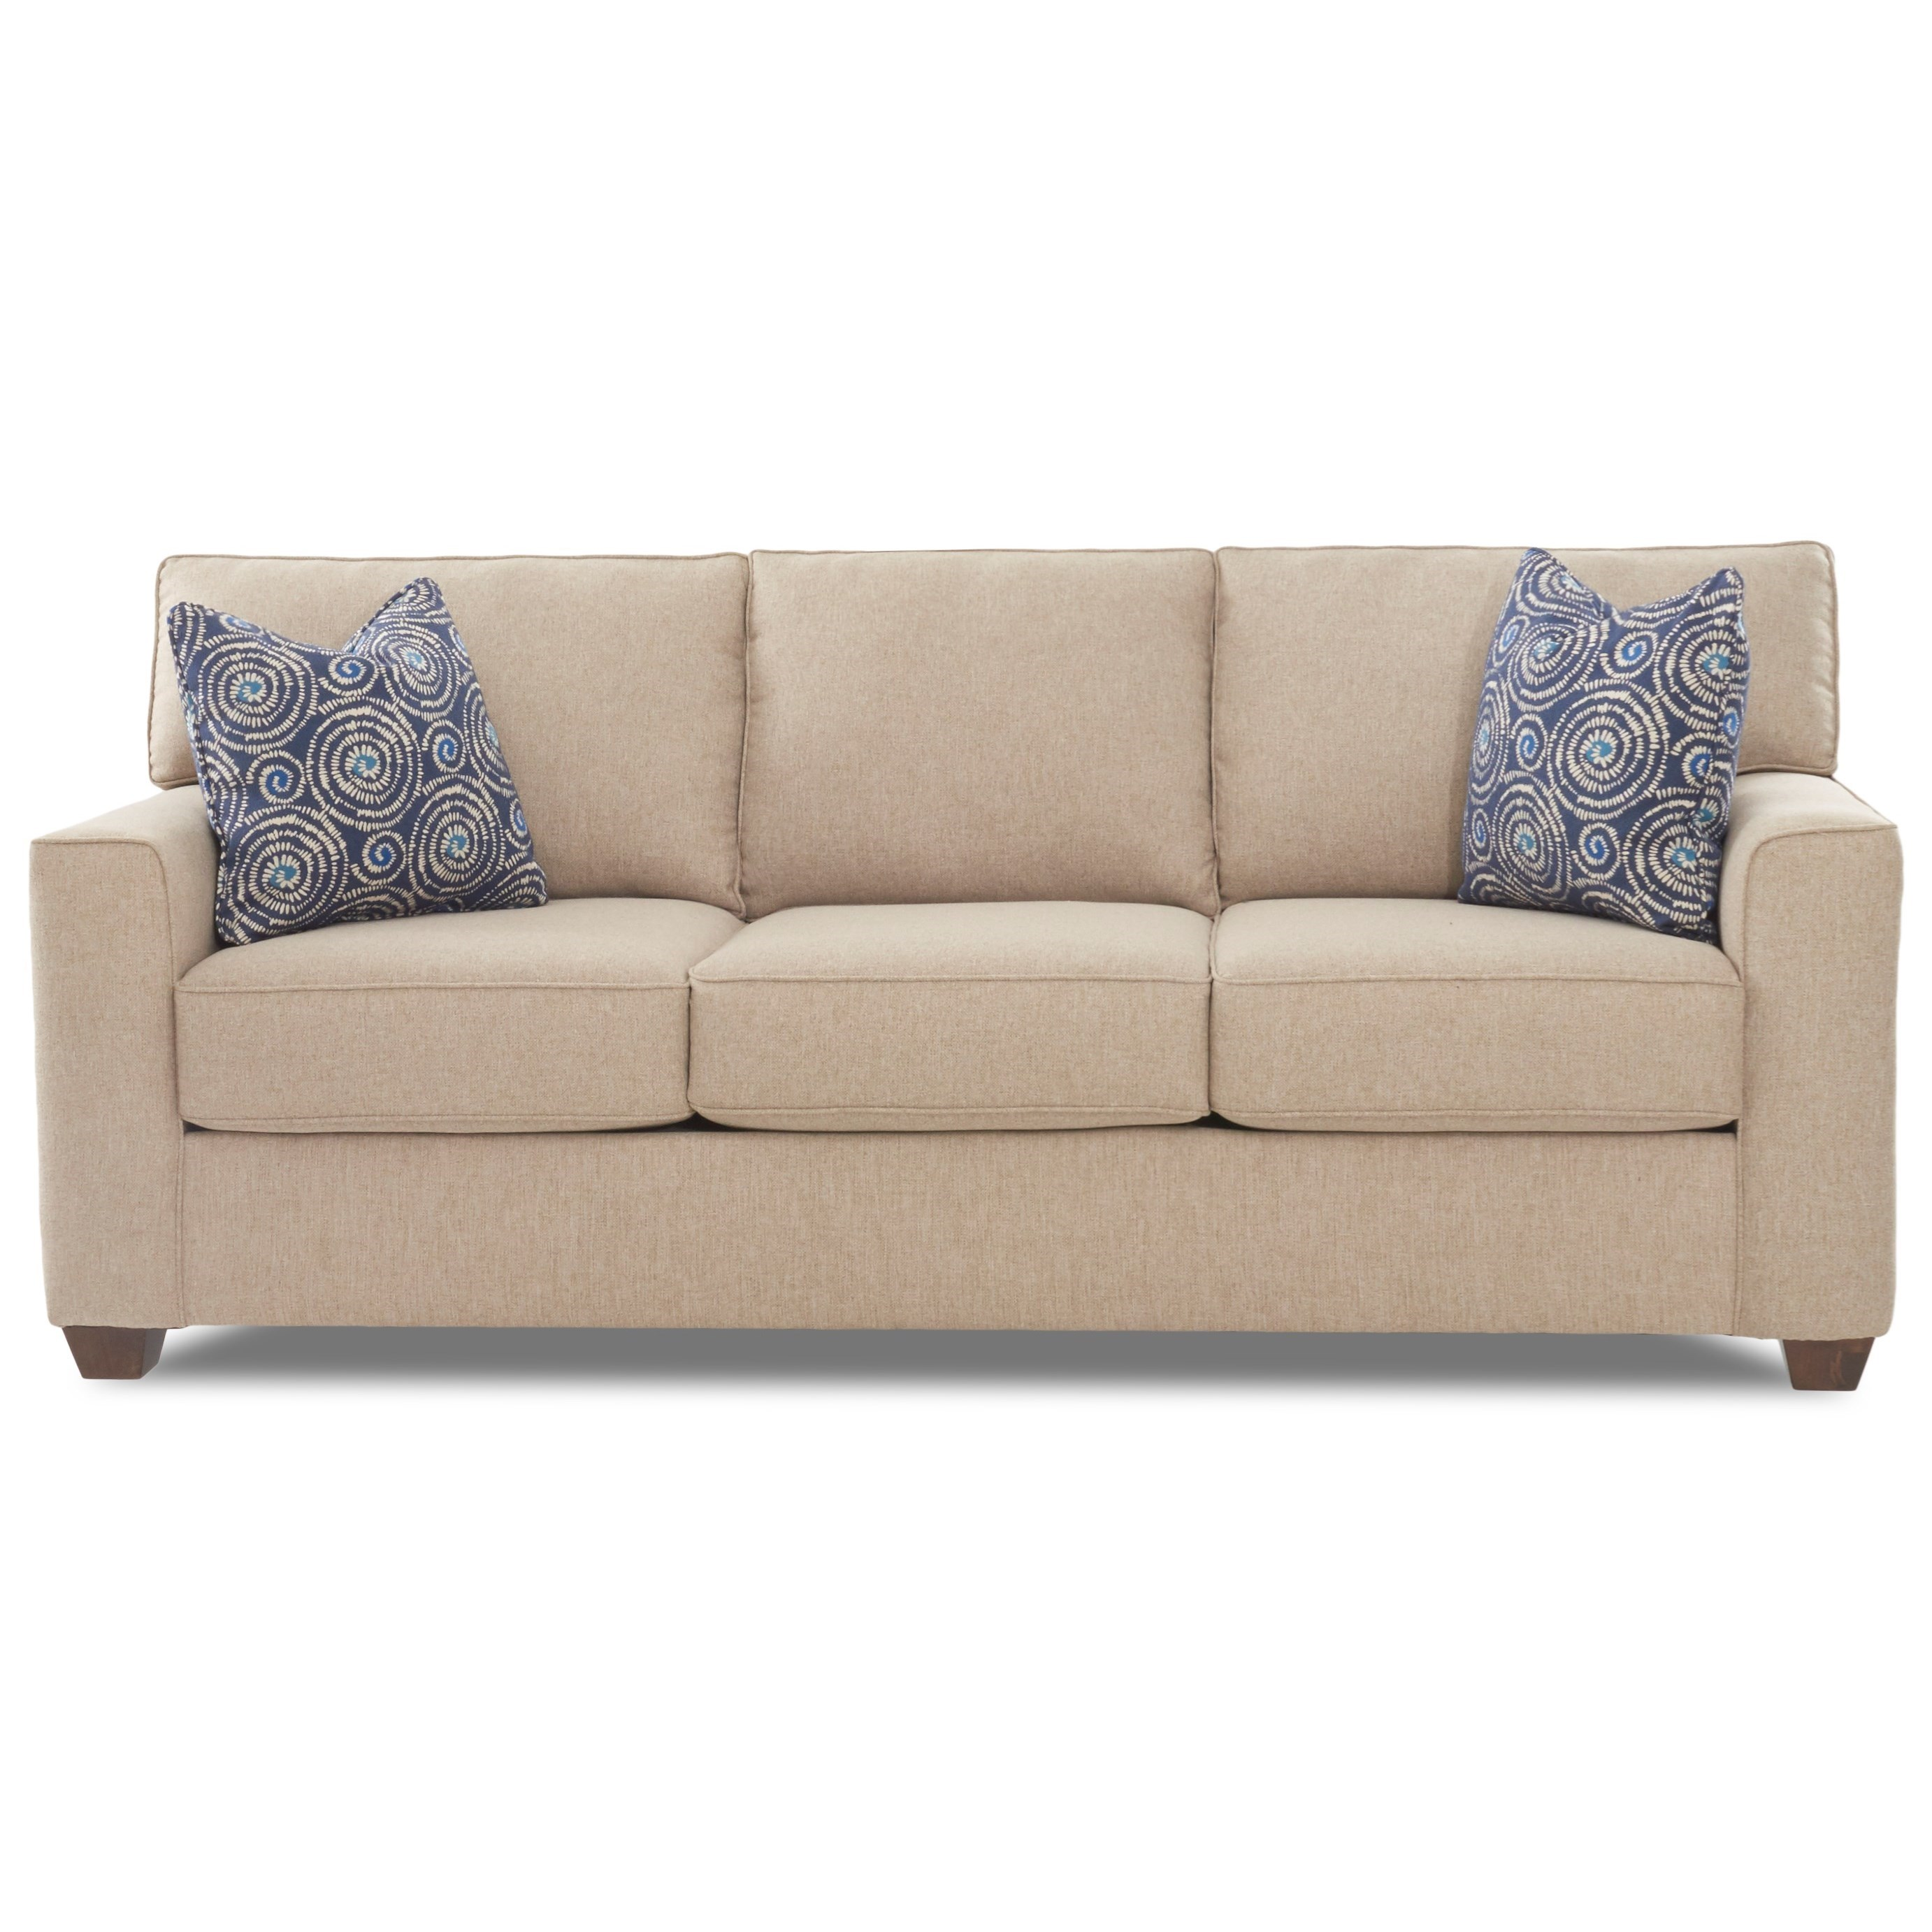 Klaussner Nolan Contemporary 3 Seat Sleeper Sofa With Enso